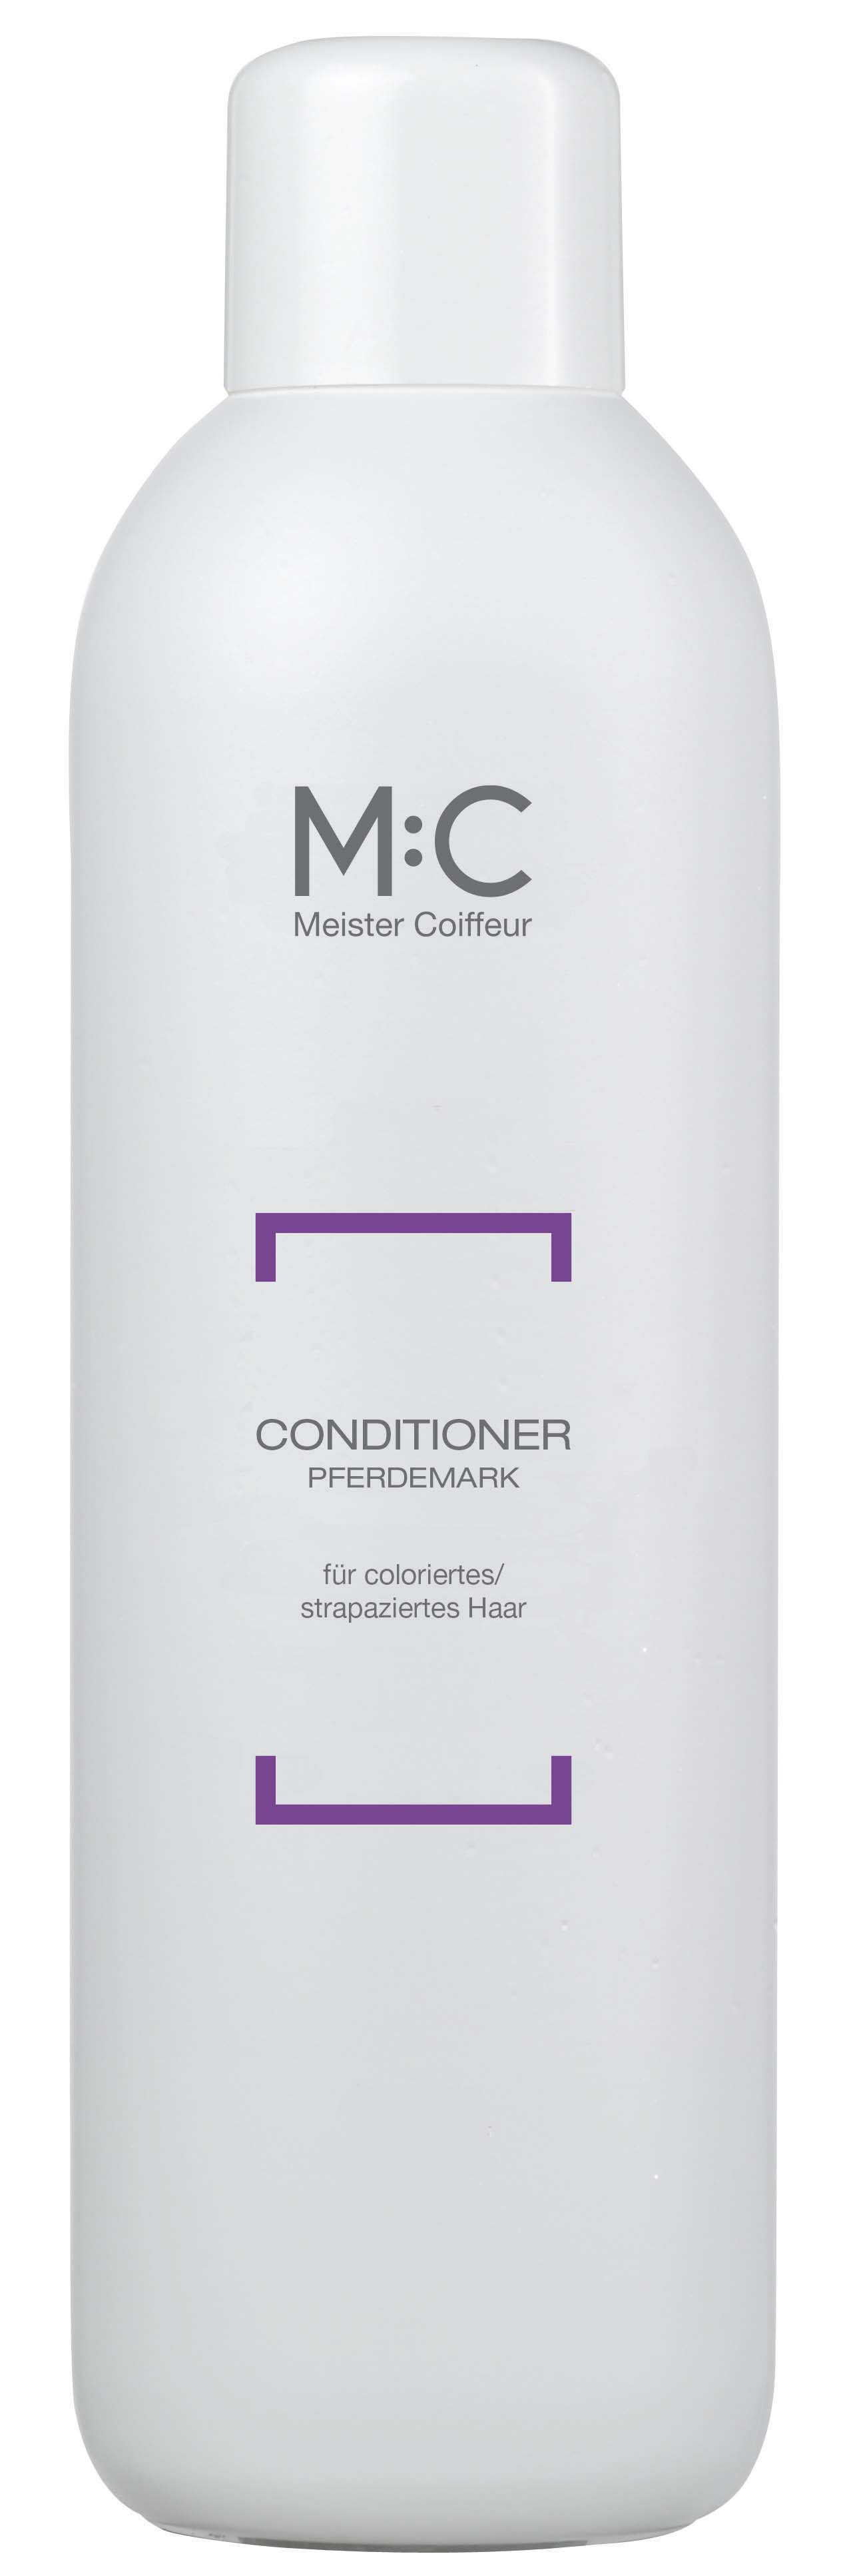 M:C Conditioner Baume capillaire Pferdemark C 1.000 ml